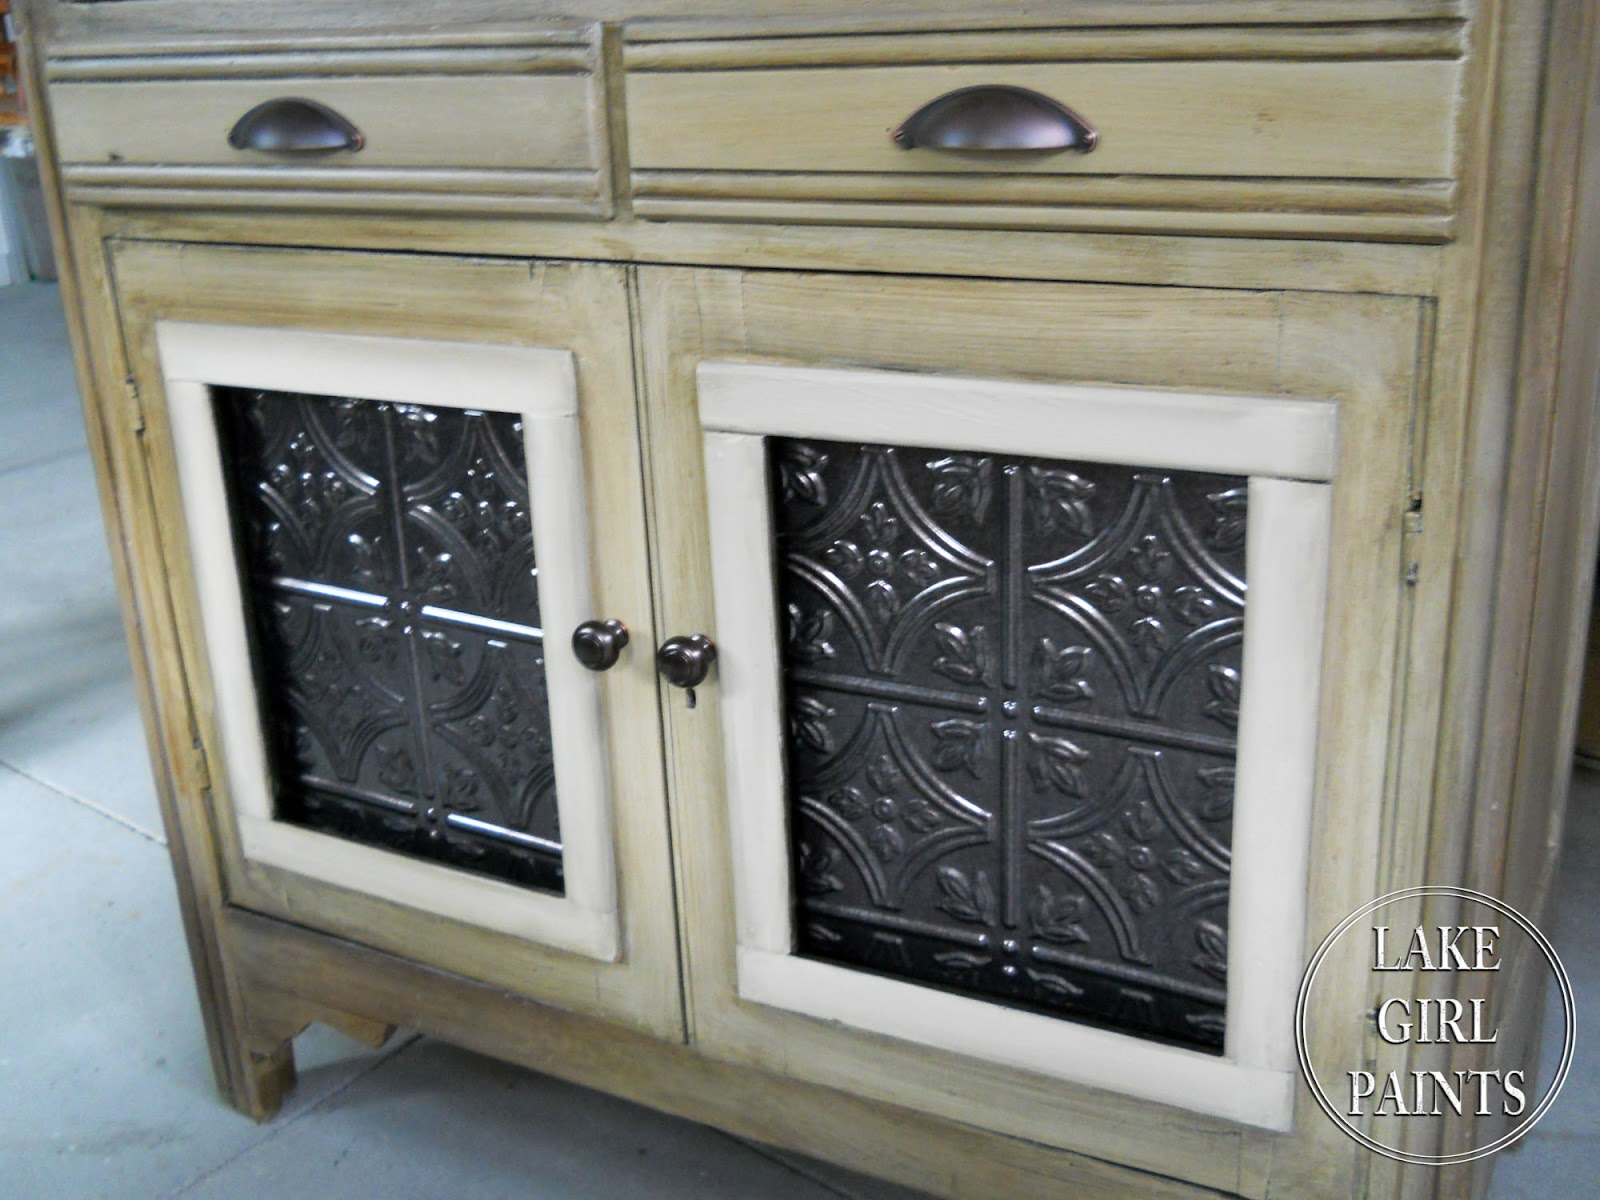 Lake Girl Paints Honey Colored Cabinet With Rustic Charm